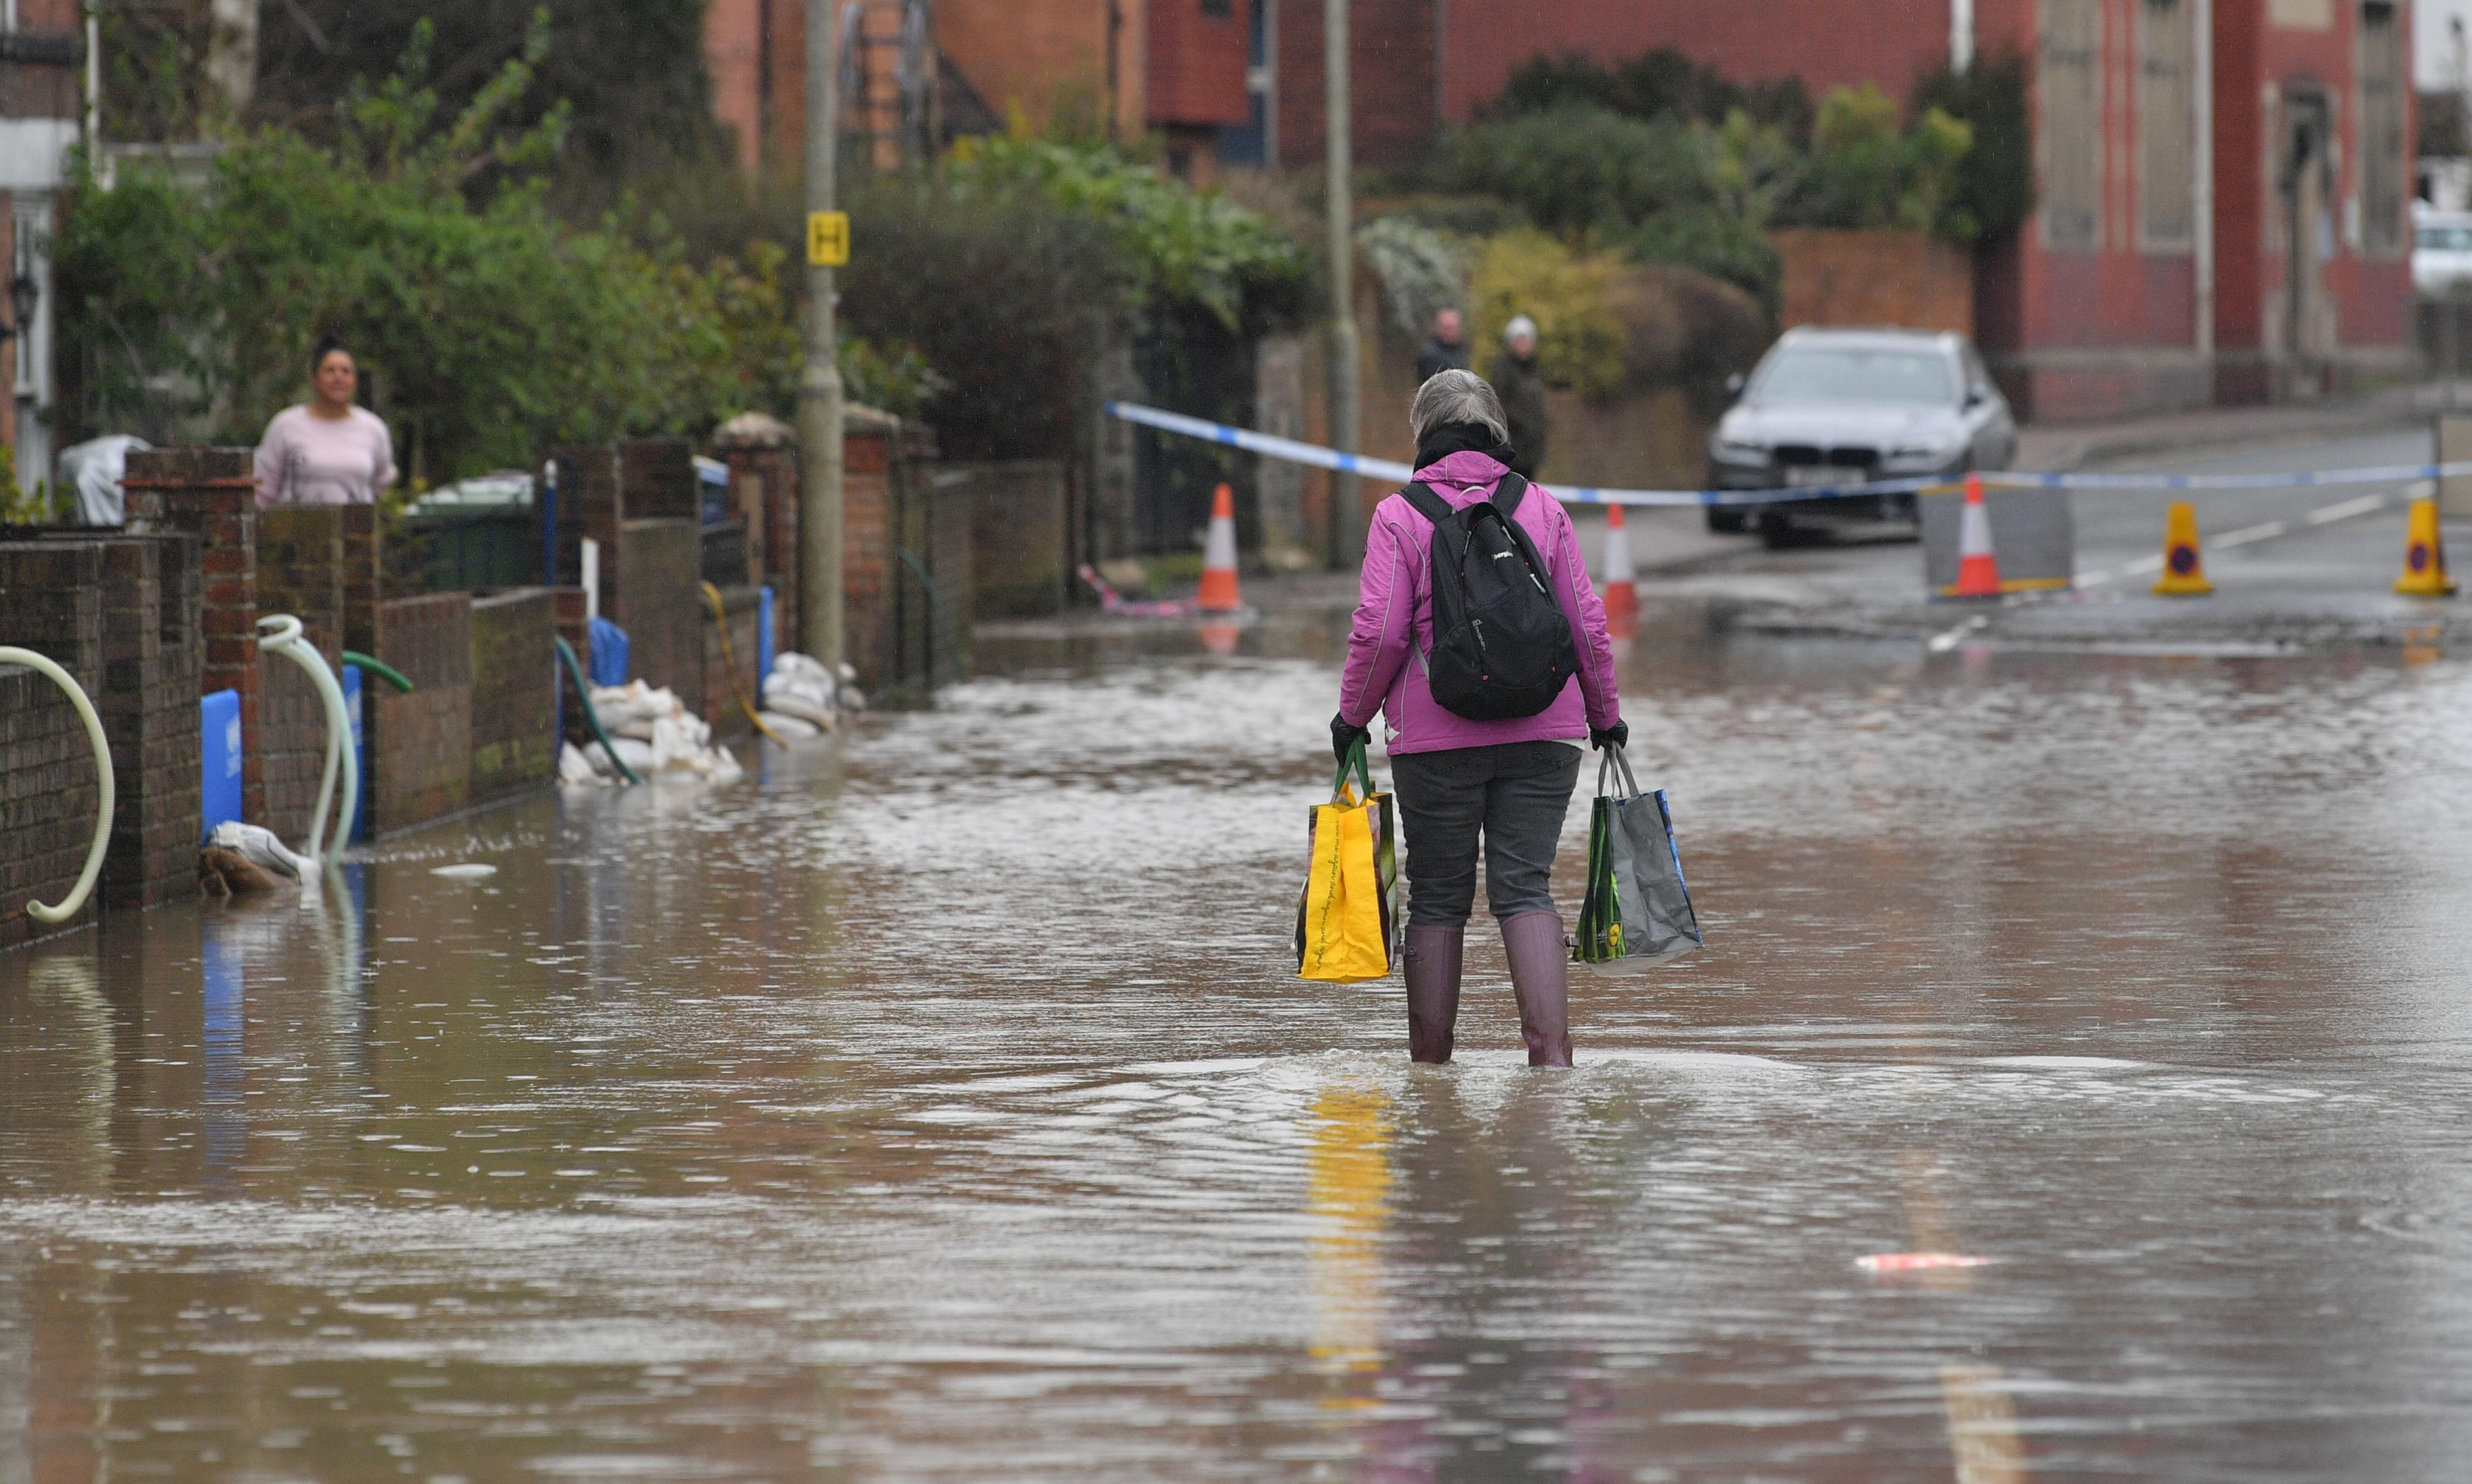 Storm Dennis damage could cost insurance companies £225m